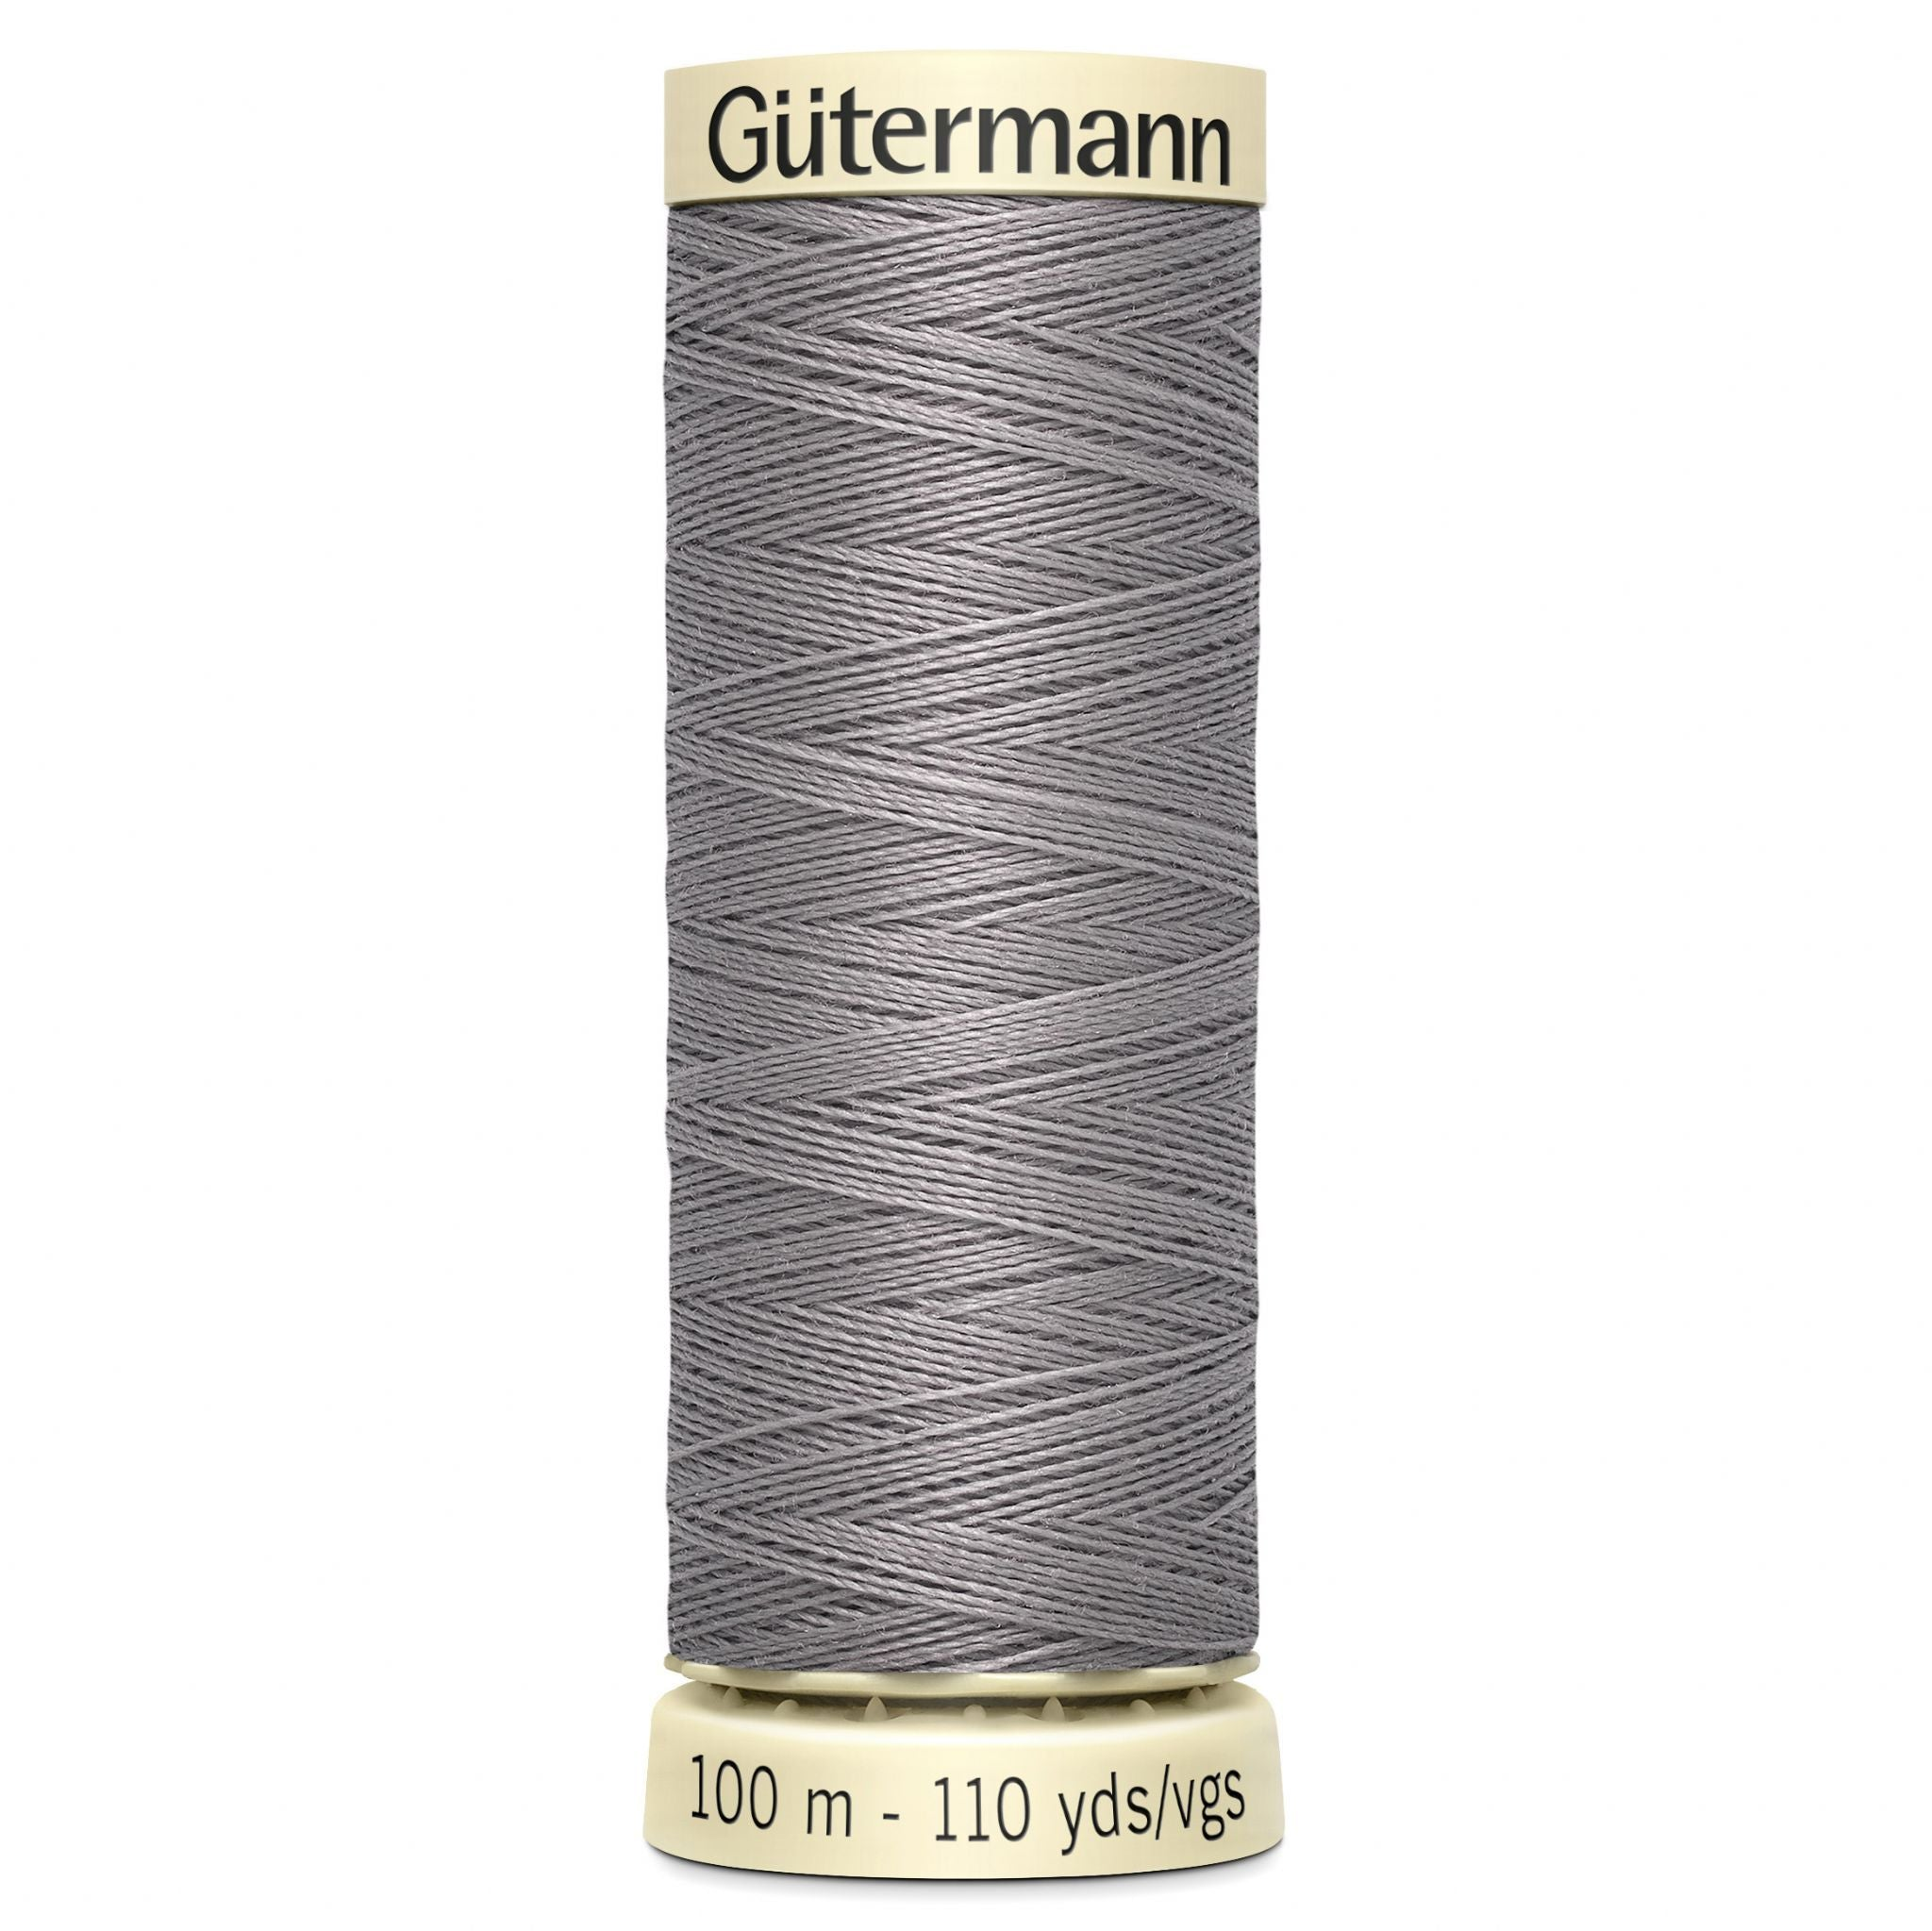 Gutermann Silver Grey Sew All Thread 100m (493)